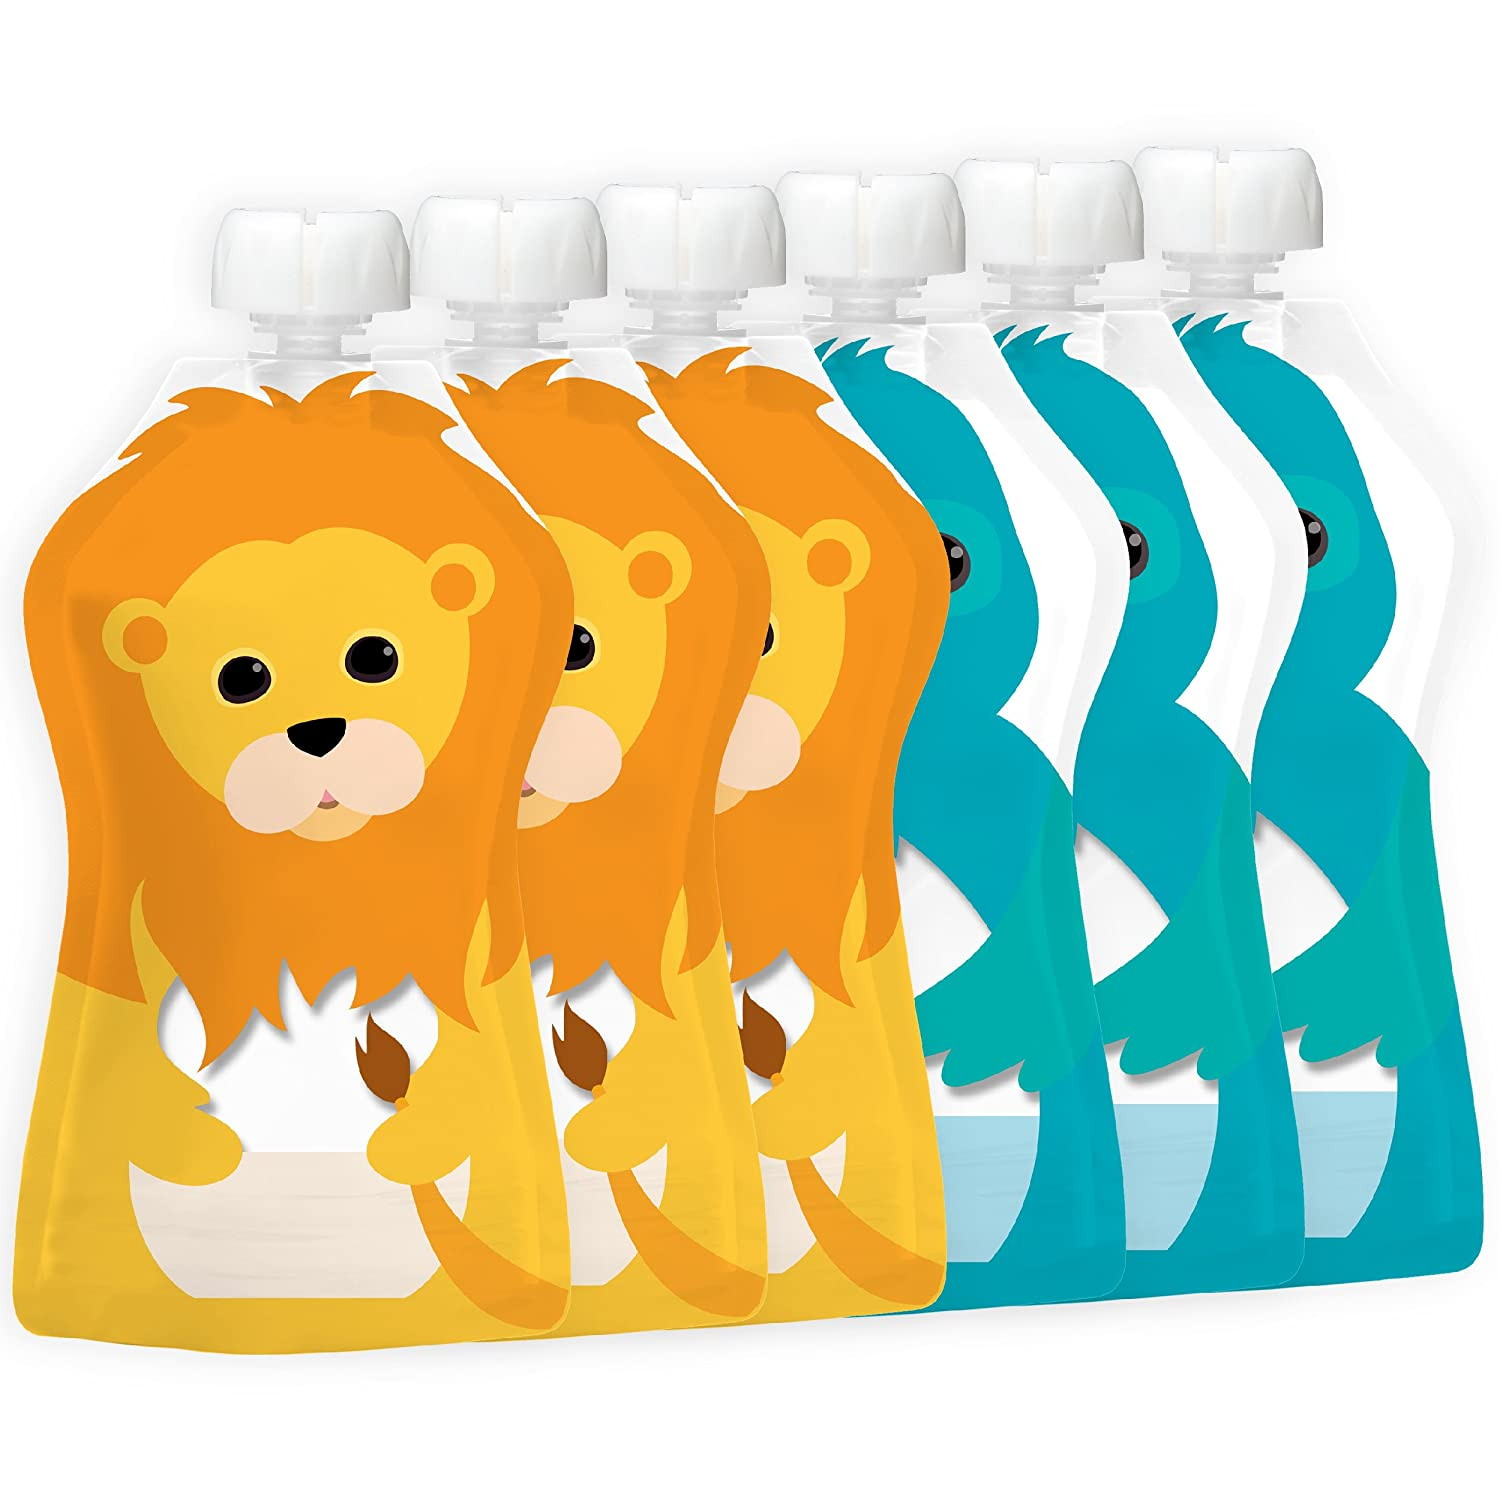 a4cd0e3b4 Squooshi Reusable Food Pouch - Small 6 Pack  Amazon.com.au  Baby